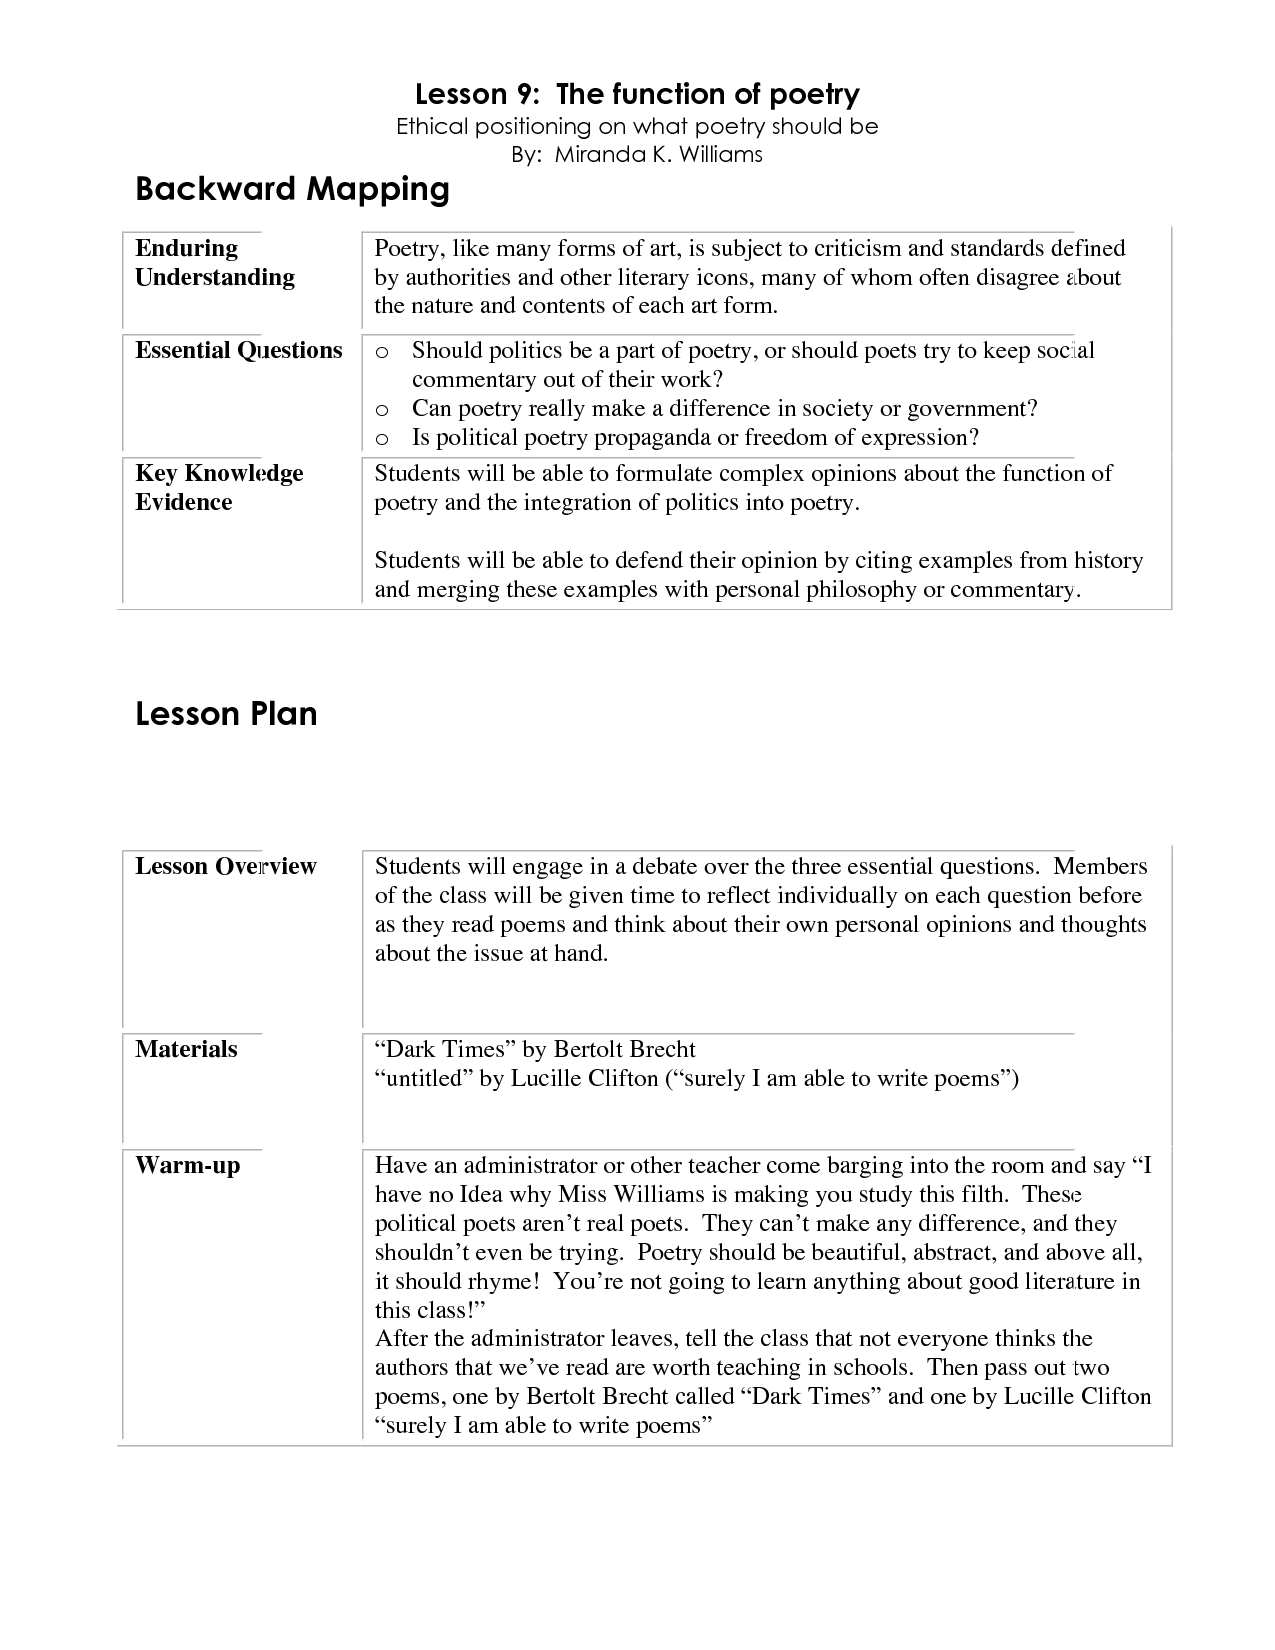 Backward planning template backward mapping lesson plan - Game design lesson plans for teachers ...